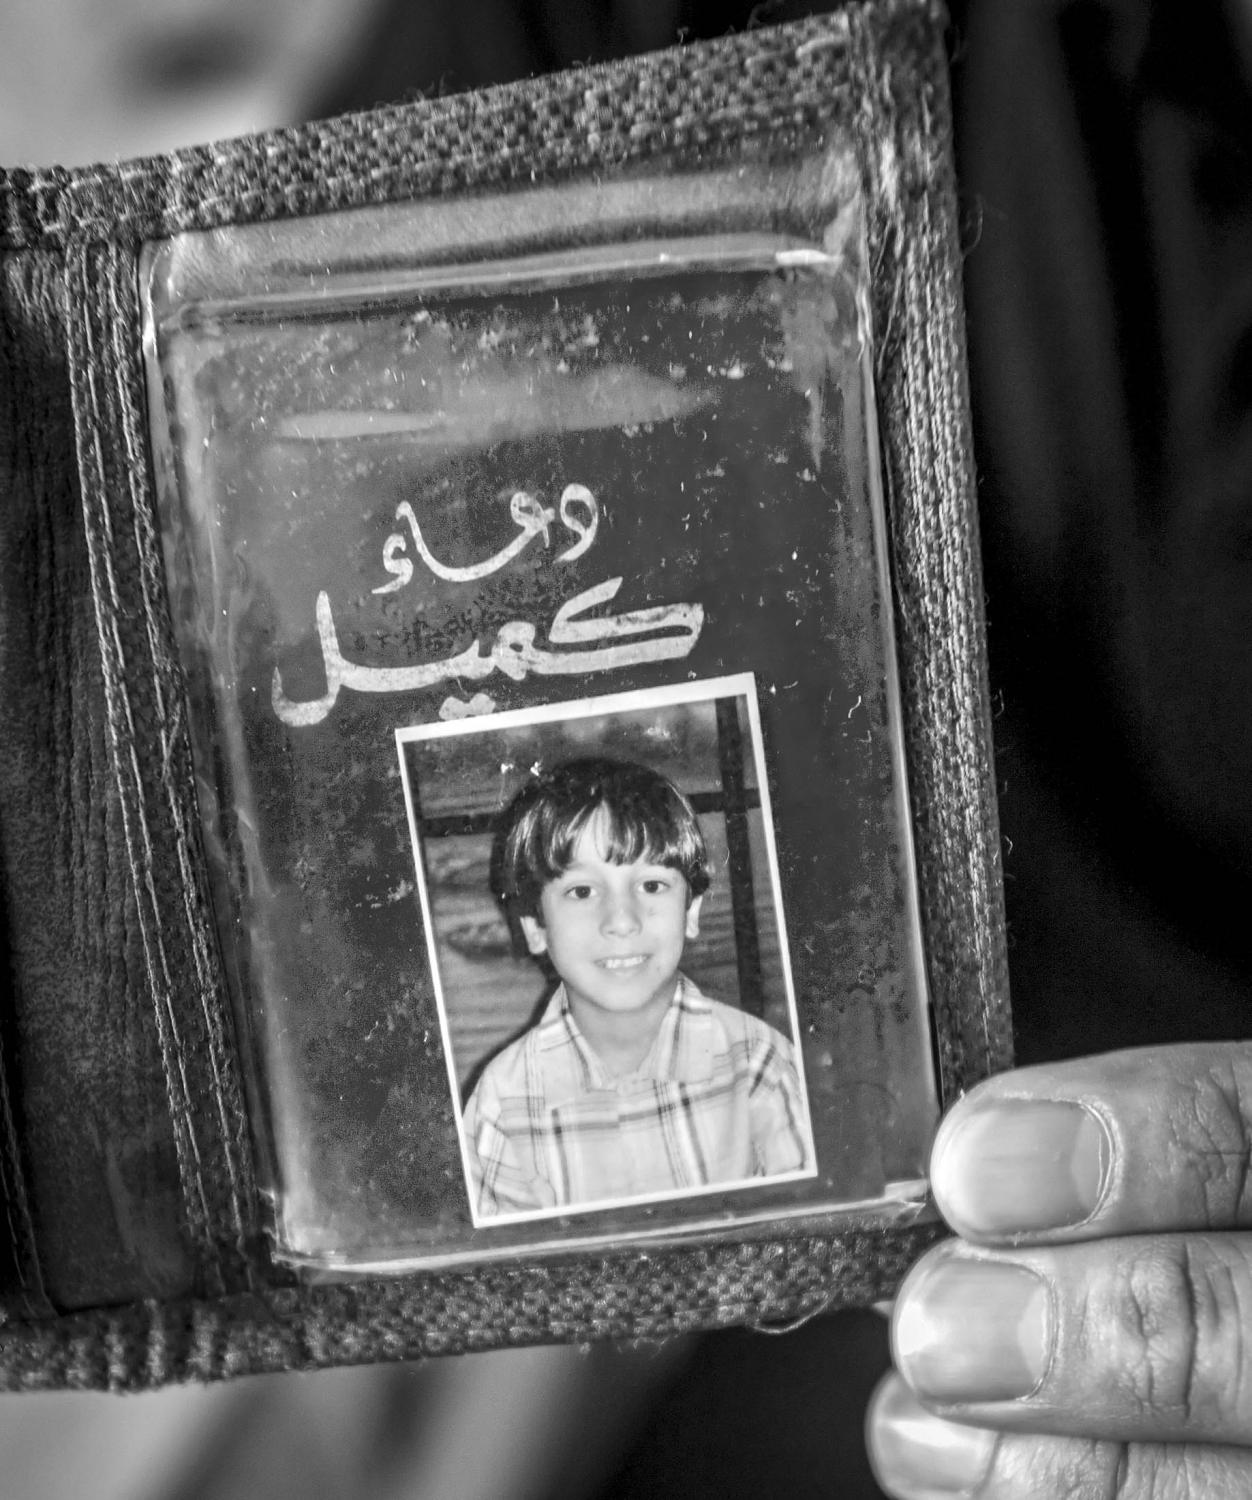 Abdullah's father keeps a photo of Abdullah taken before he was injured.